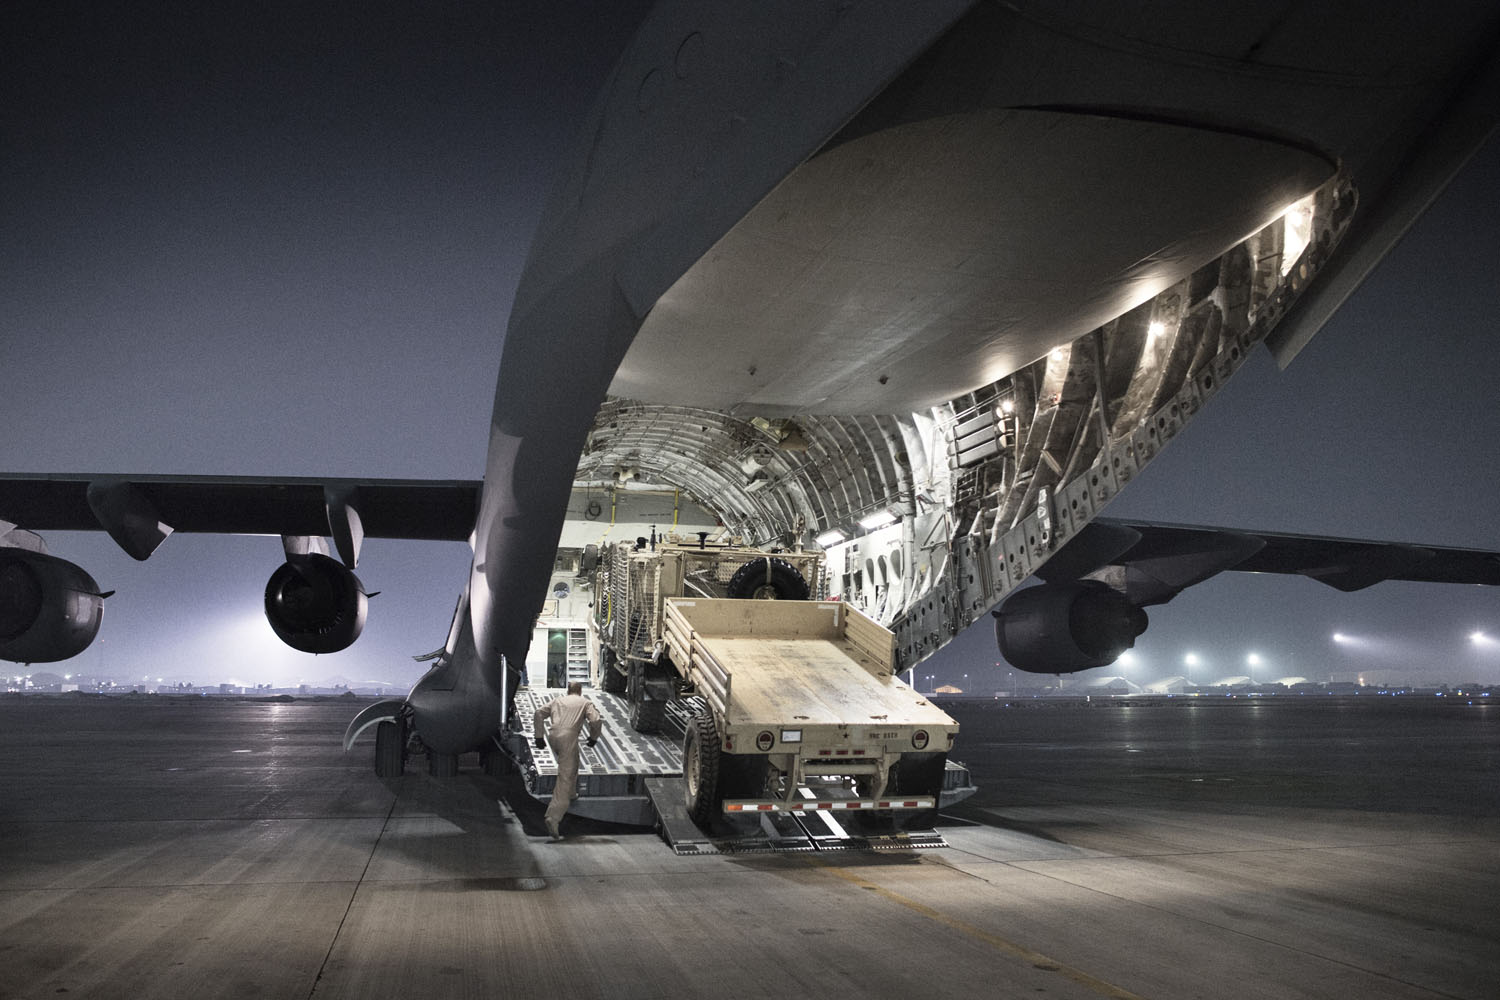 An airman climbs aboard a C-17 cargo aircraft at Bagram Airbase while loading an armored vehicle and trailer for a flight out of the country. When snow closes some key routes out of the country, the U.S. military ships nearly 70 percent of the equipment leaving the country by air, both through civilian contractors and Air Force cargo flights.